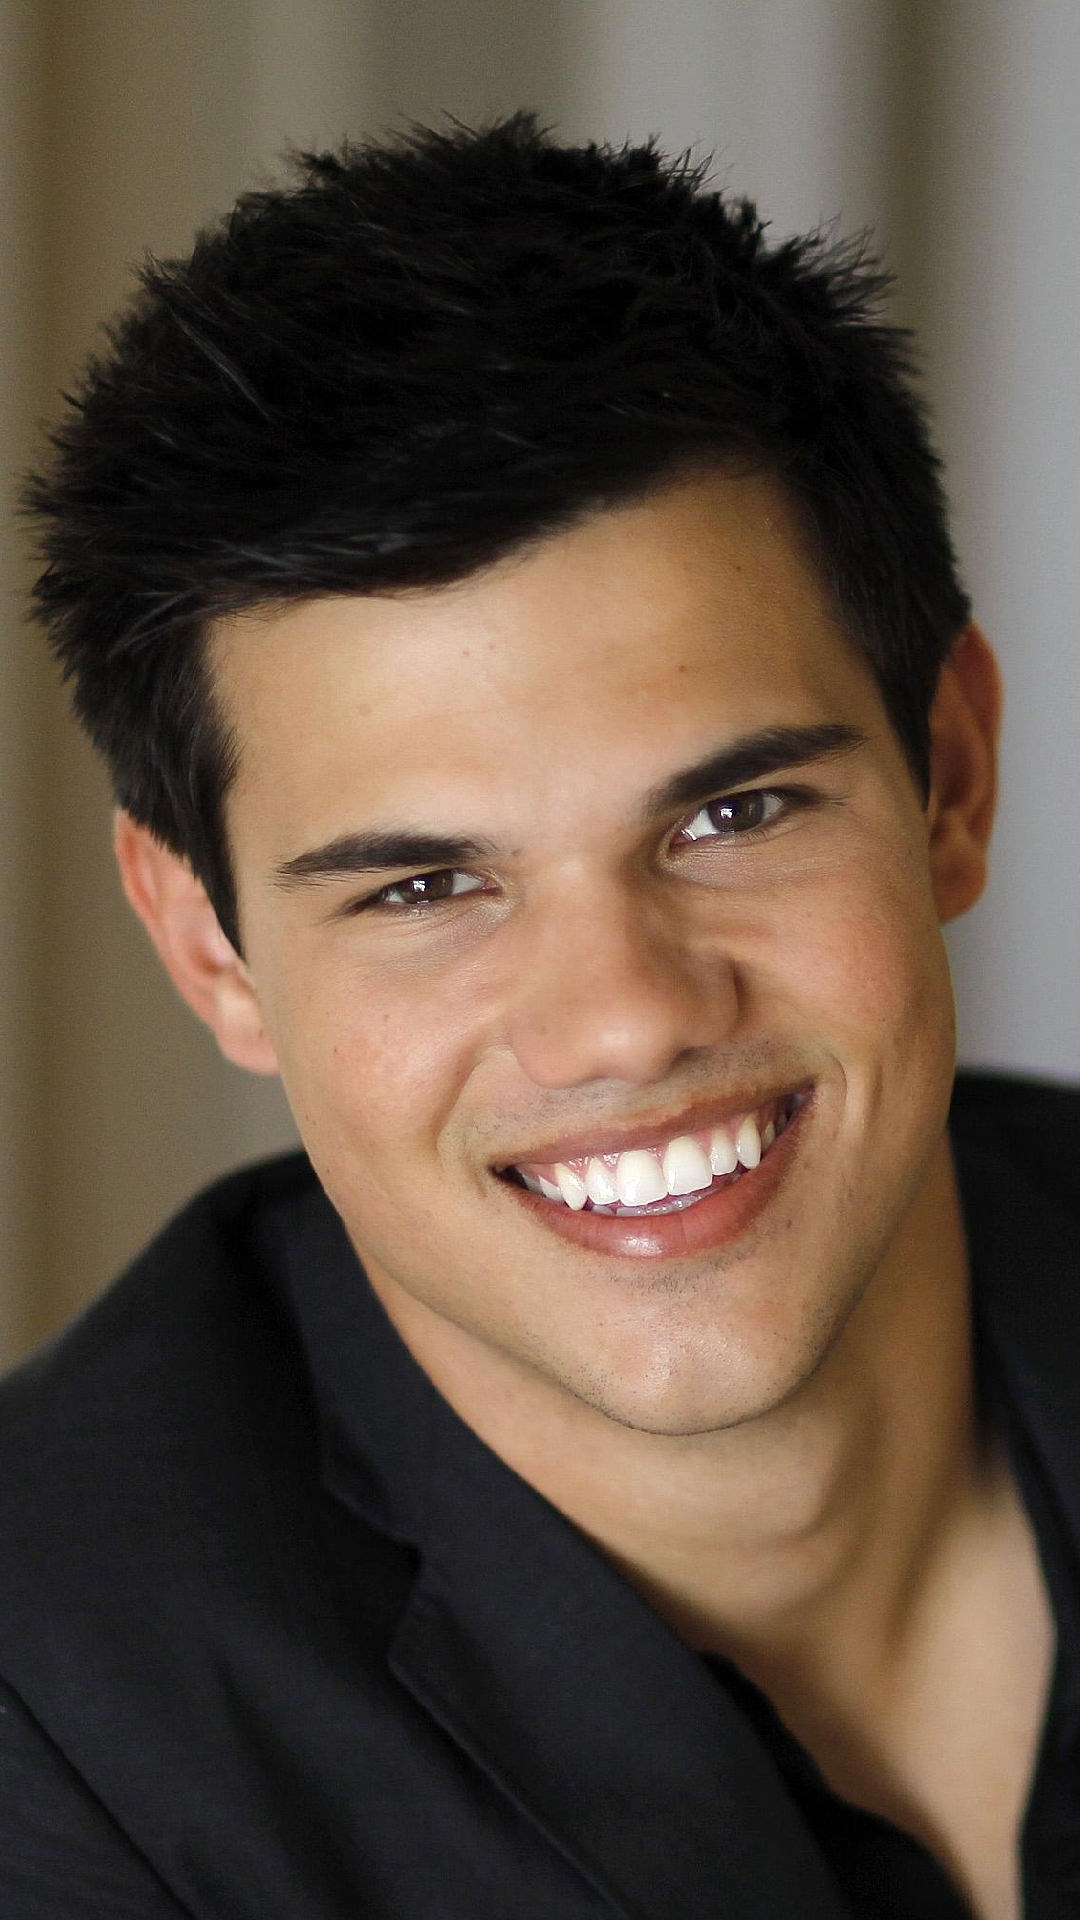 Actor Wallpapers 1402059632 taylor lautner smiling iphone ...